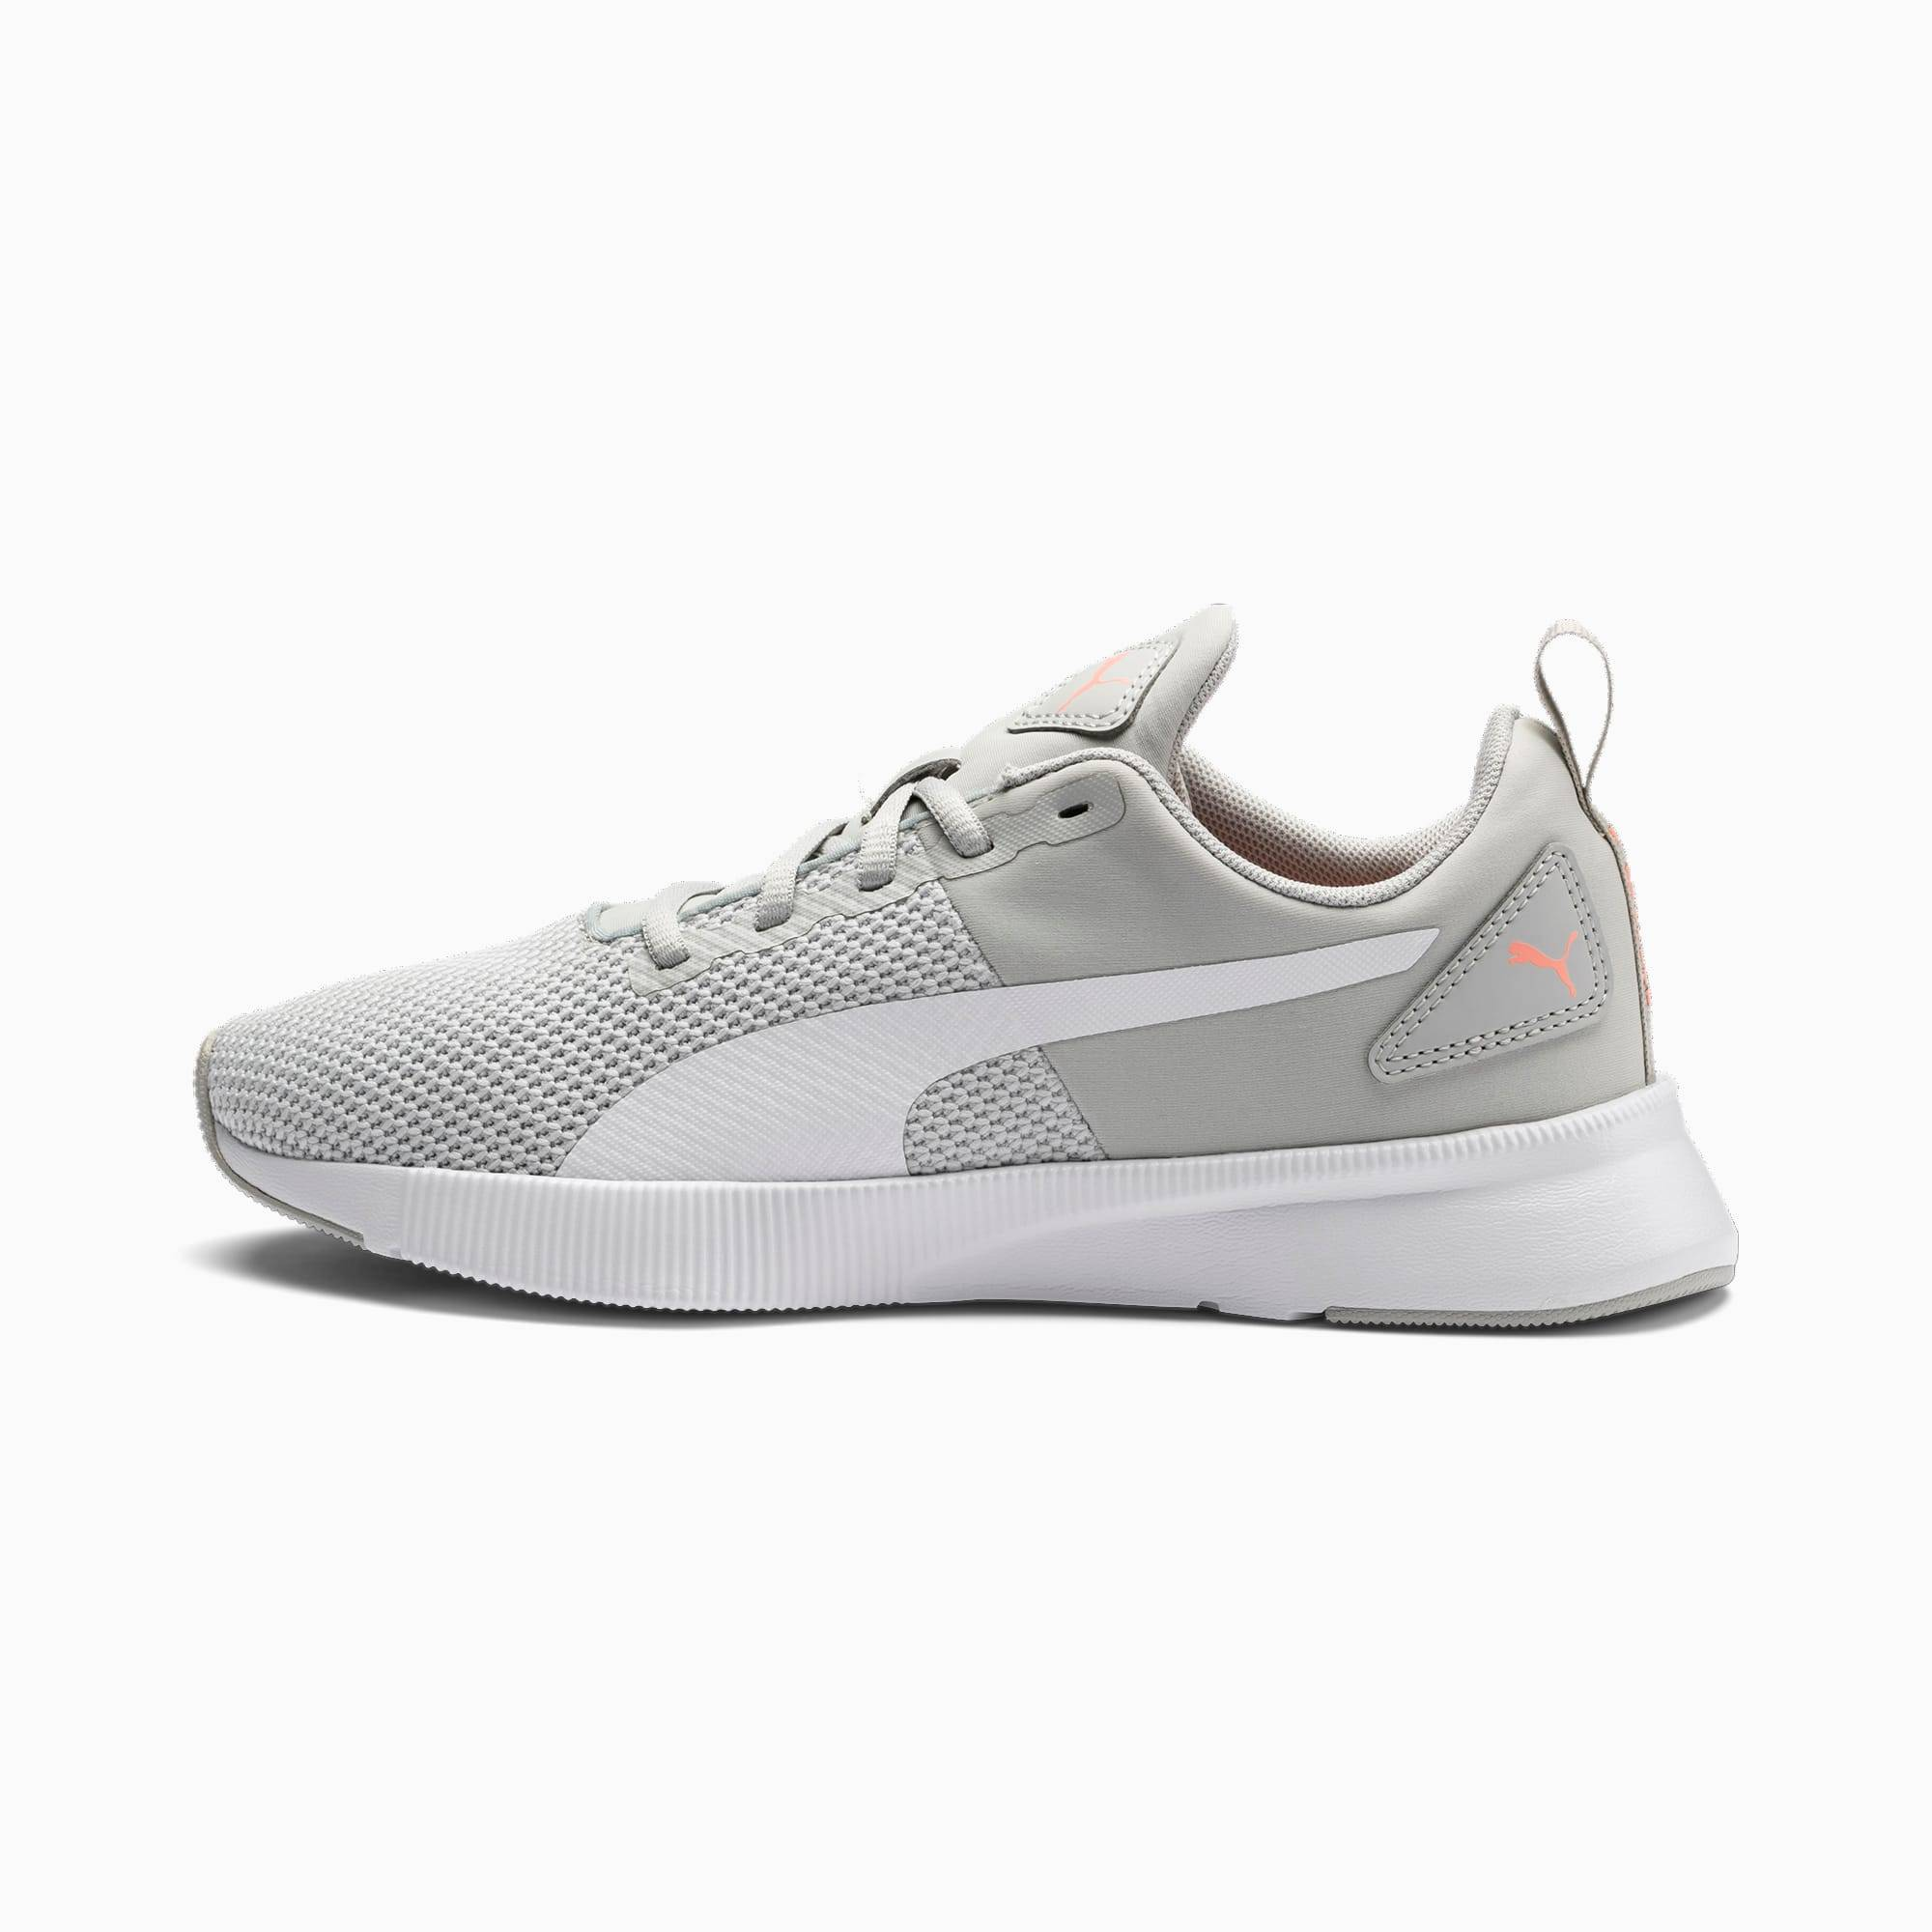 PUMA Chaussure de course Flyer Runner, Blanc/Rose/Gris, Taille 35.5, Chaussures